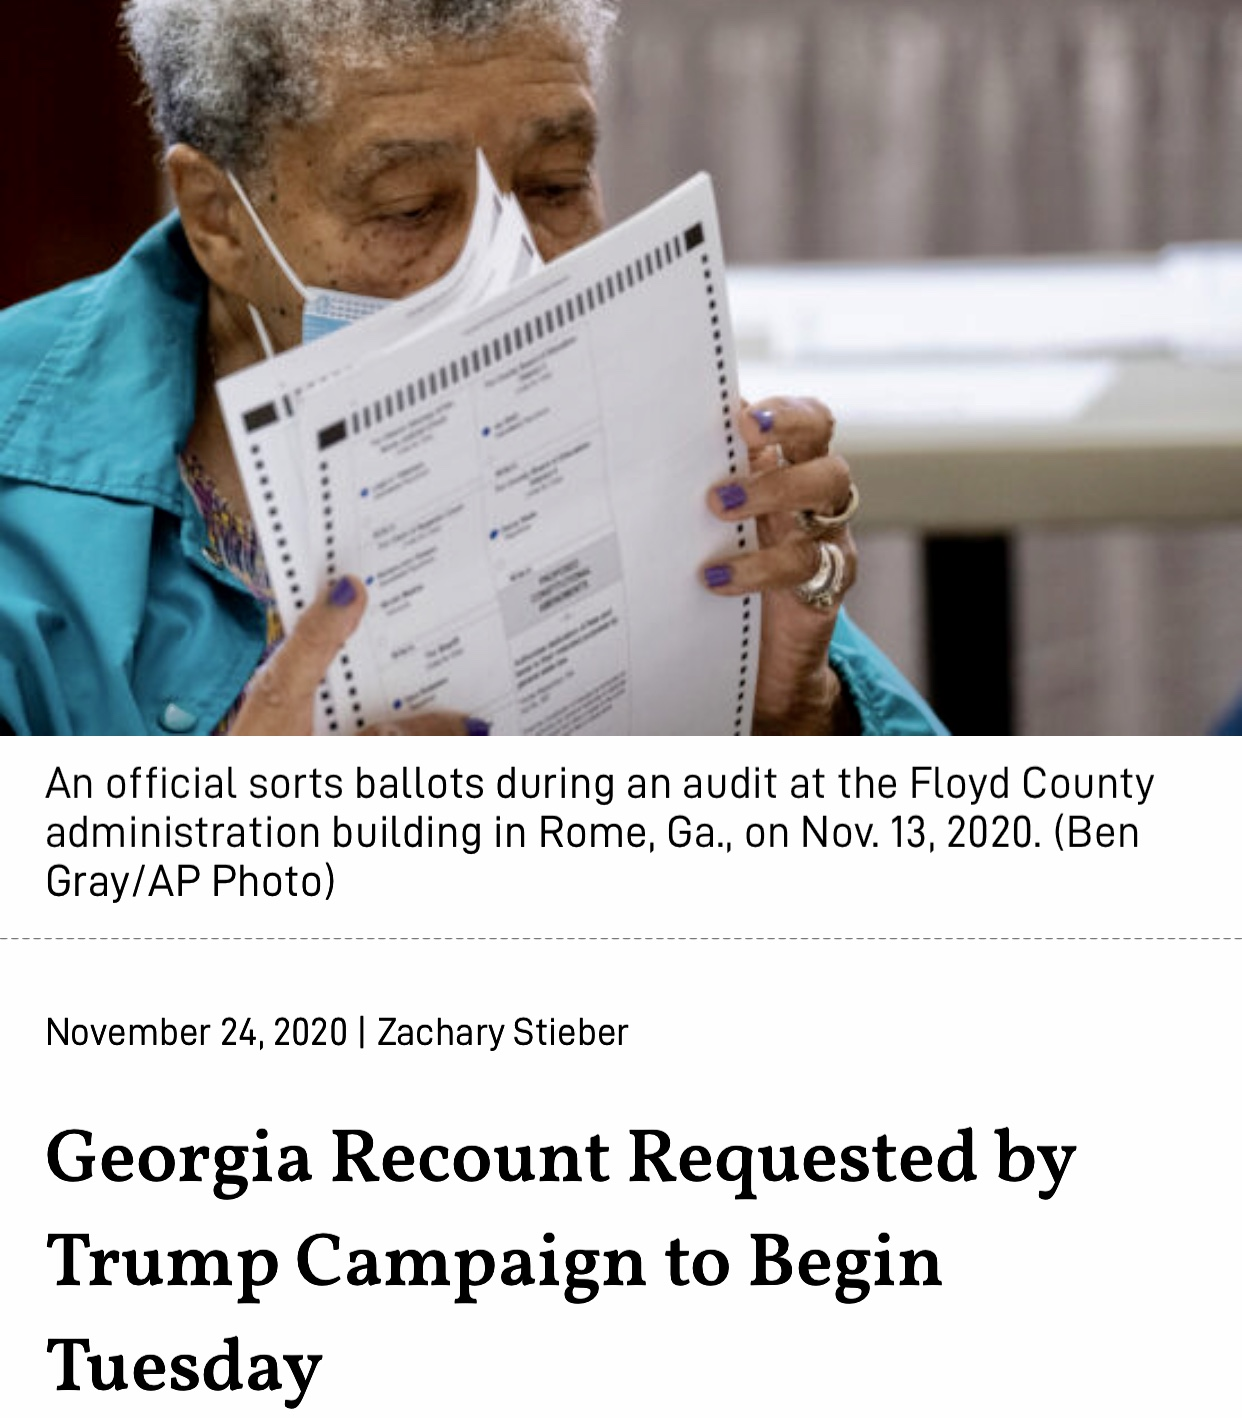 Georgia Recount Requested by Trump Campaign to Begin Tuesday